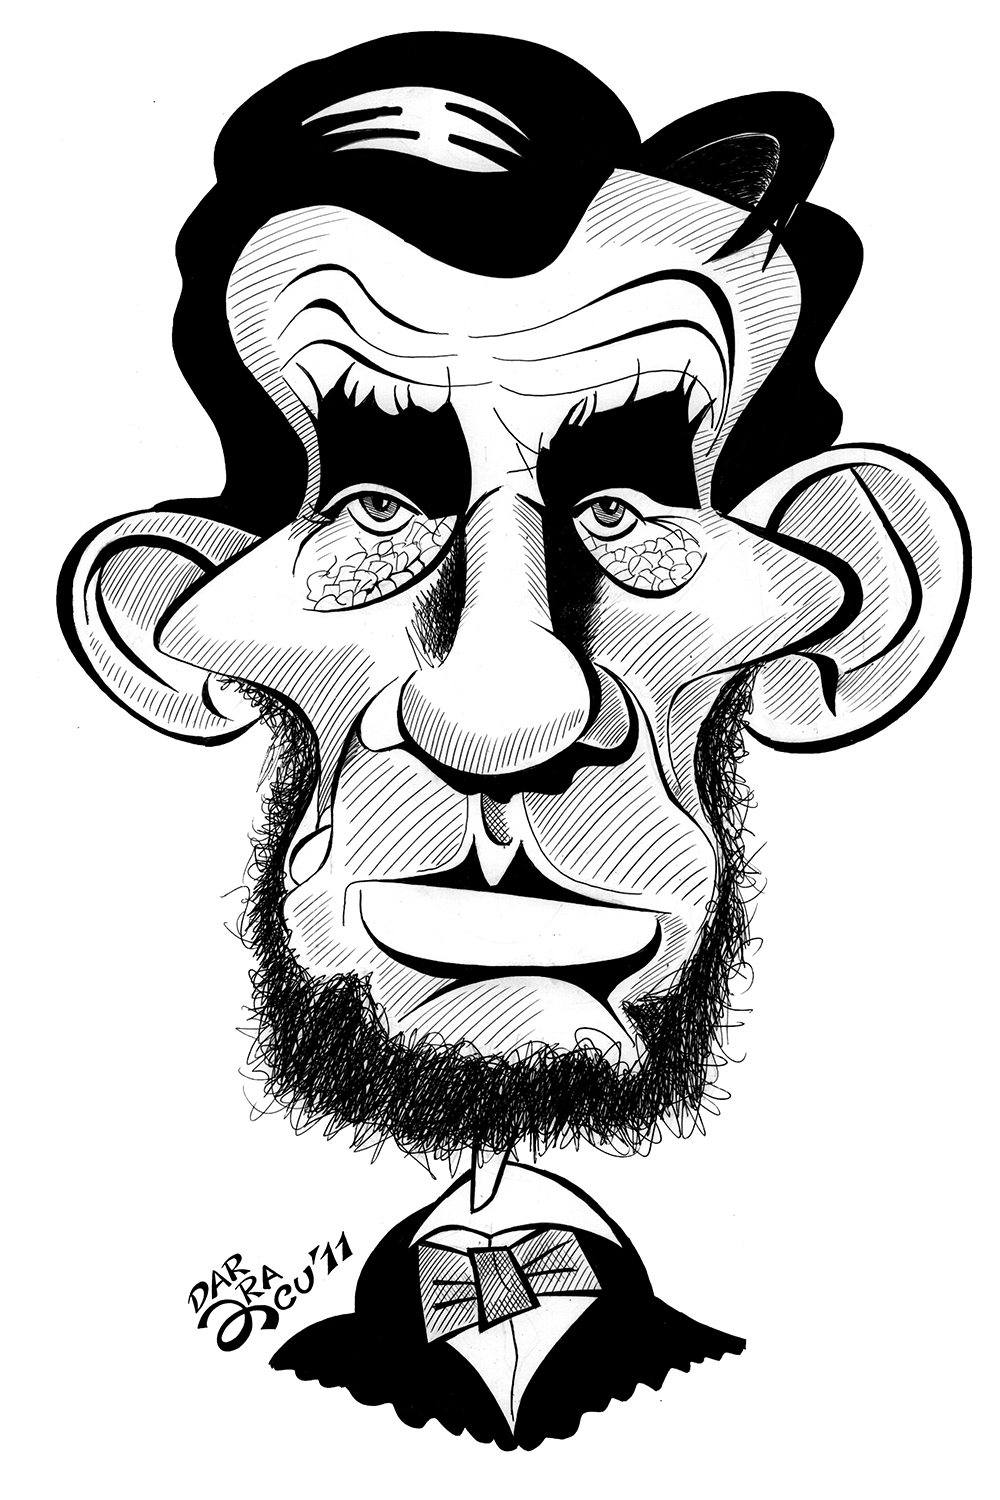 1000x1500 Caricature Of Lincoln Abraham Lincoln Caricatures